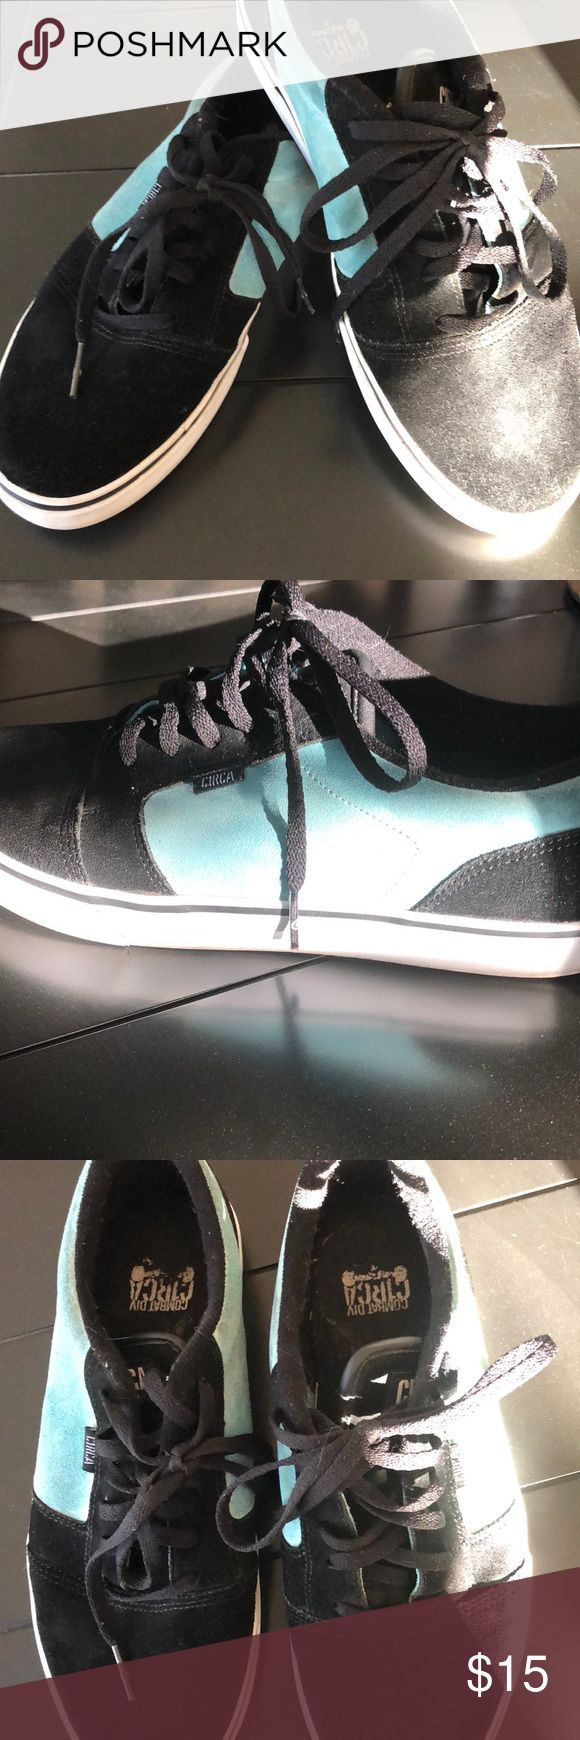 Men's Circa suede shoes Black and teal suede Circa shoes. Moderate wear but price reflects that. Circa Shoes Sneakers